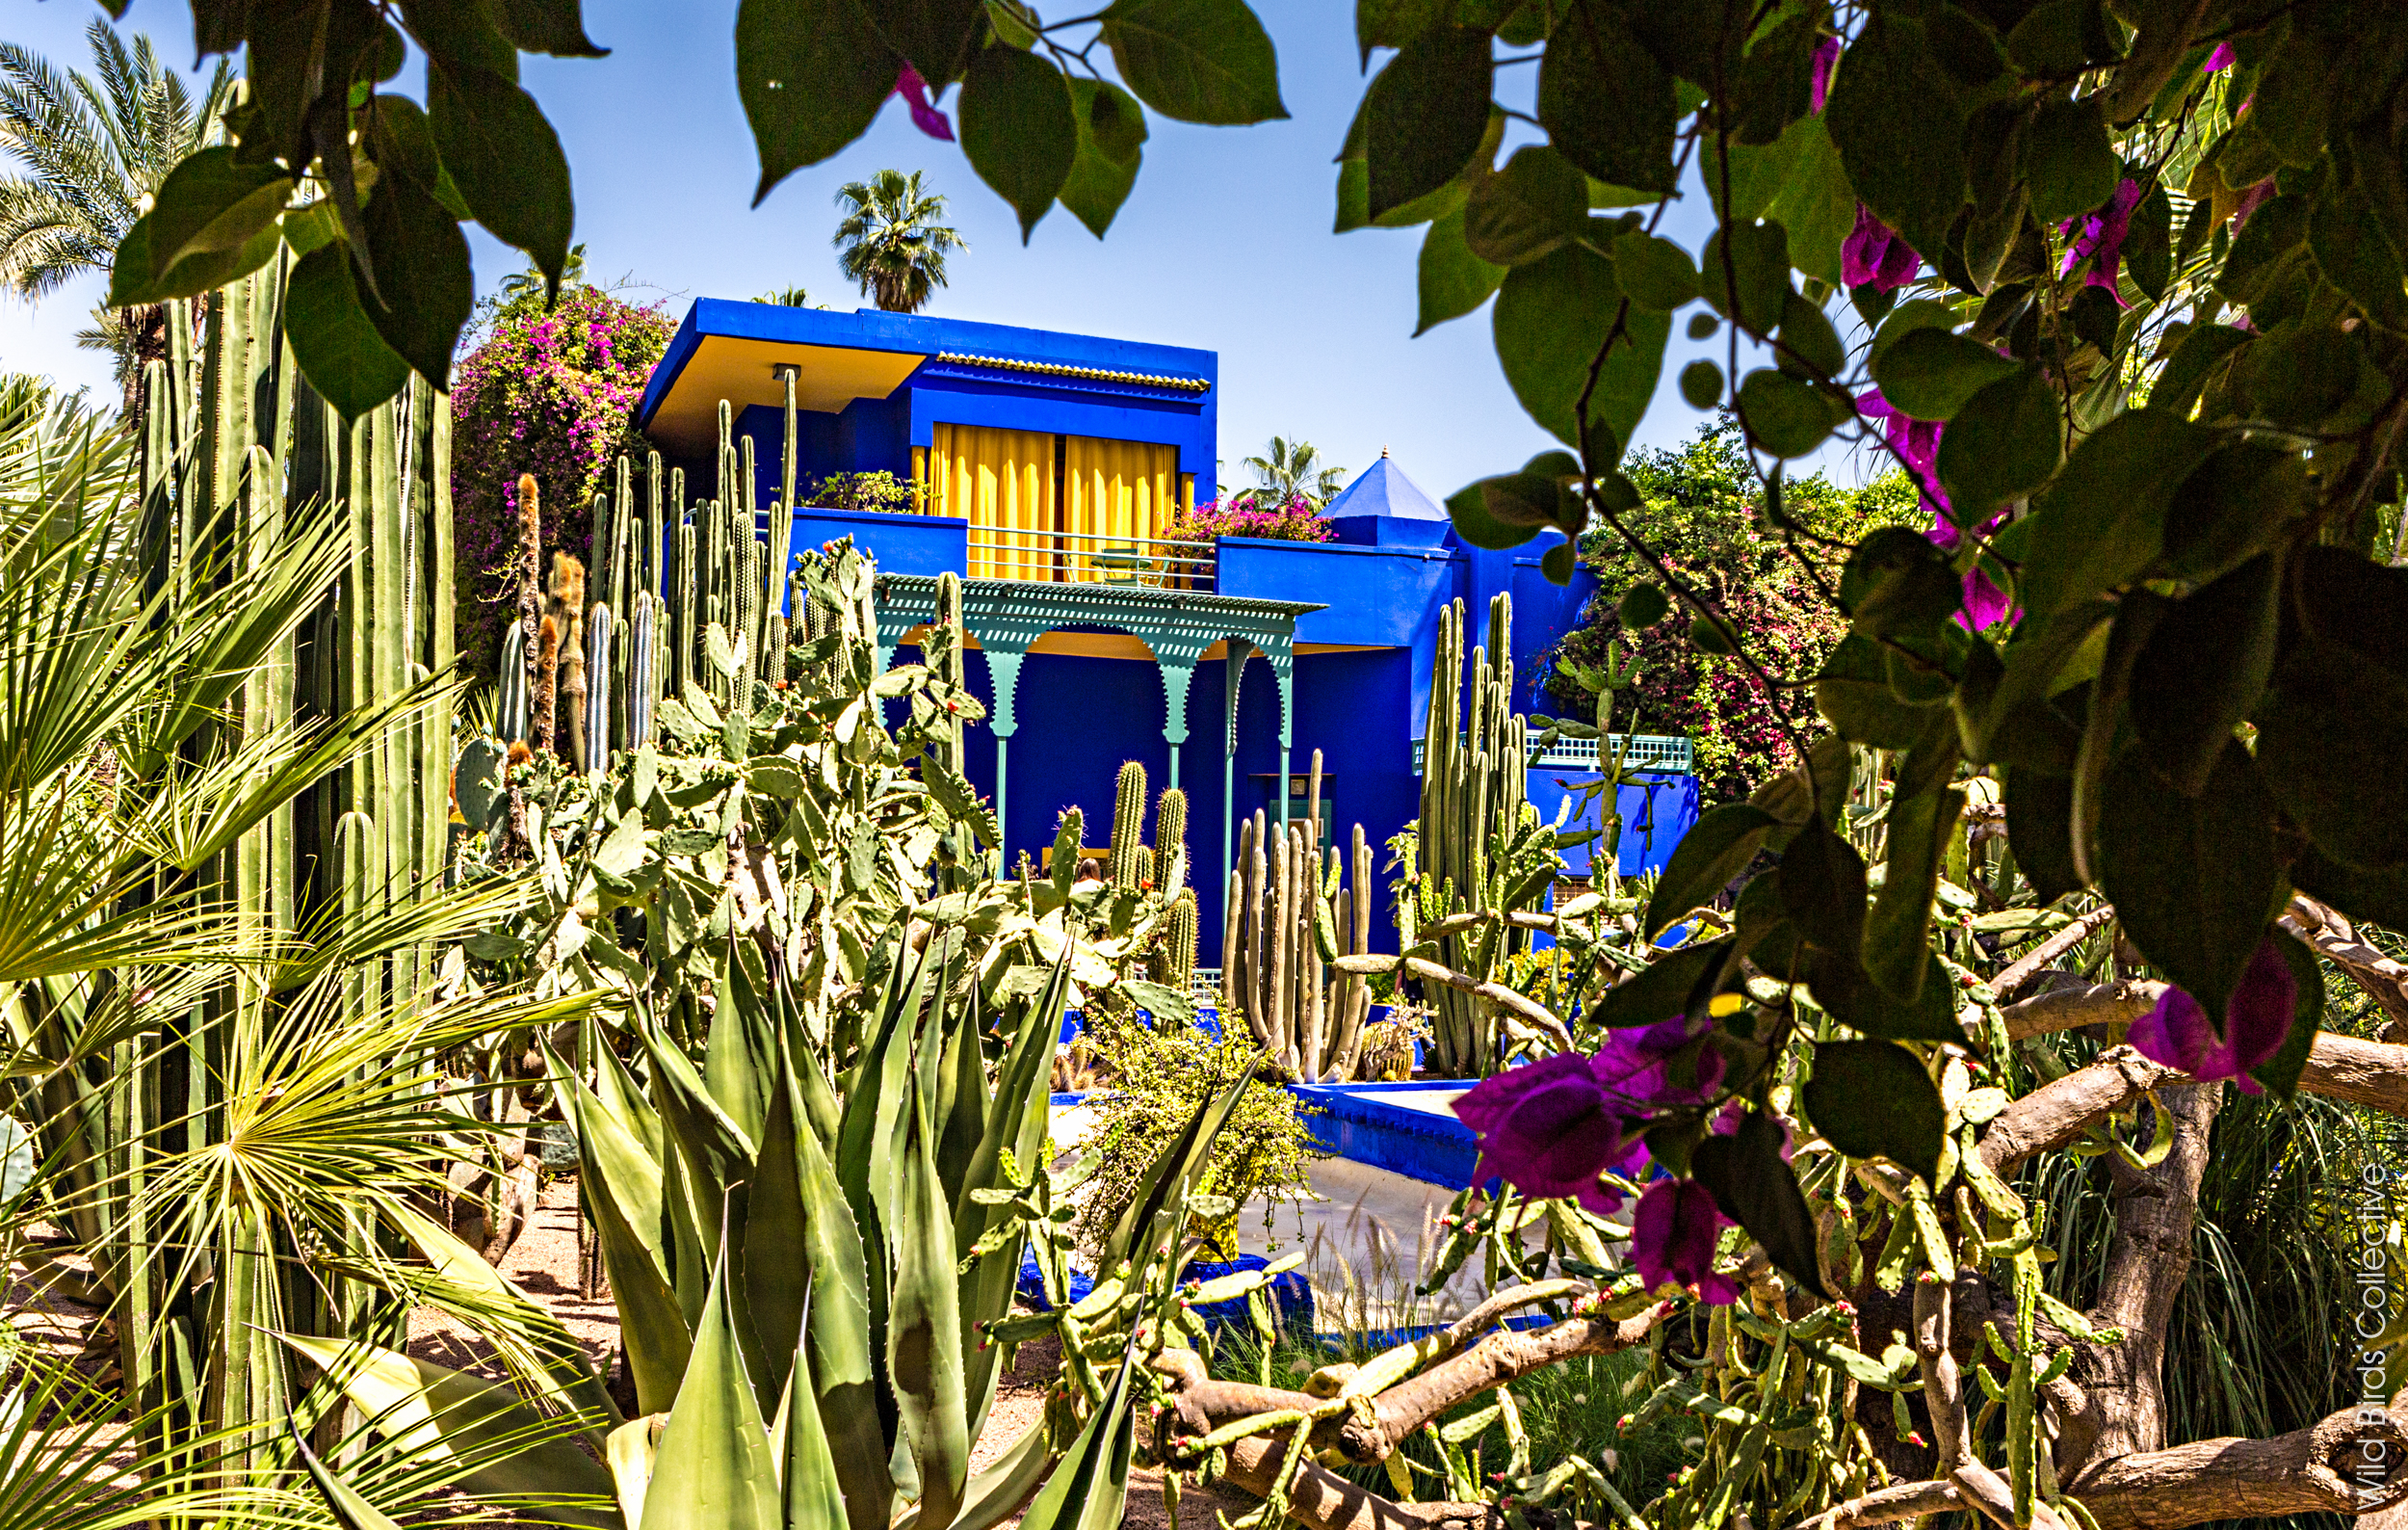 Visiter le jardin majorelle marrakech wild birds for Jardin marrakech